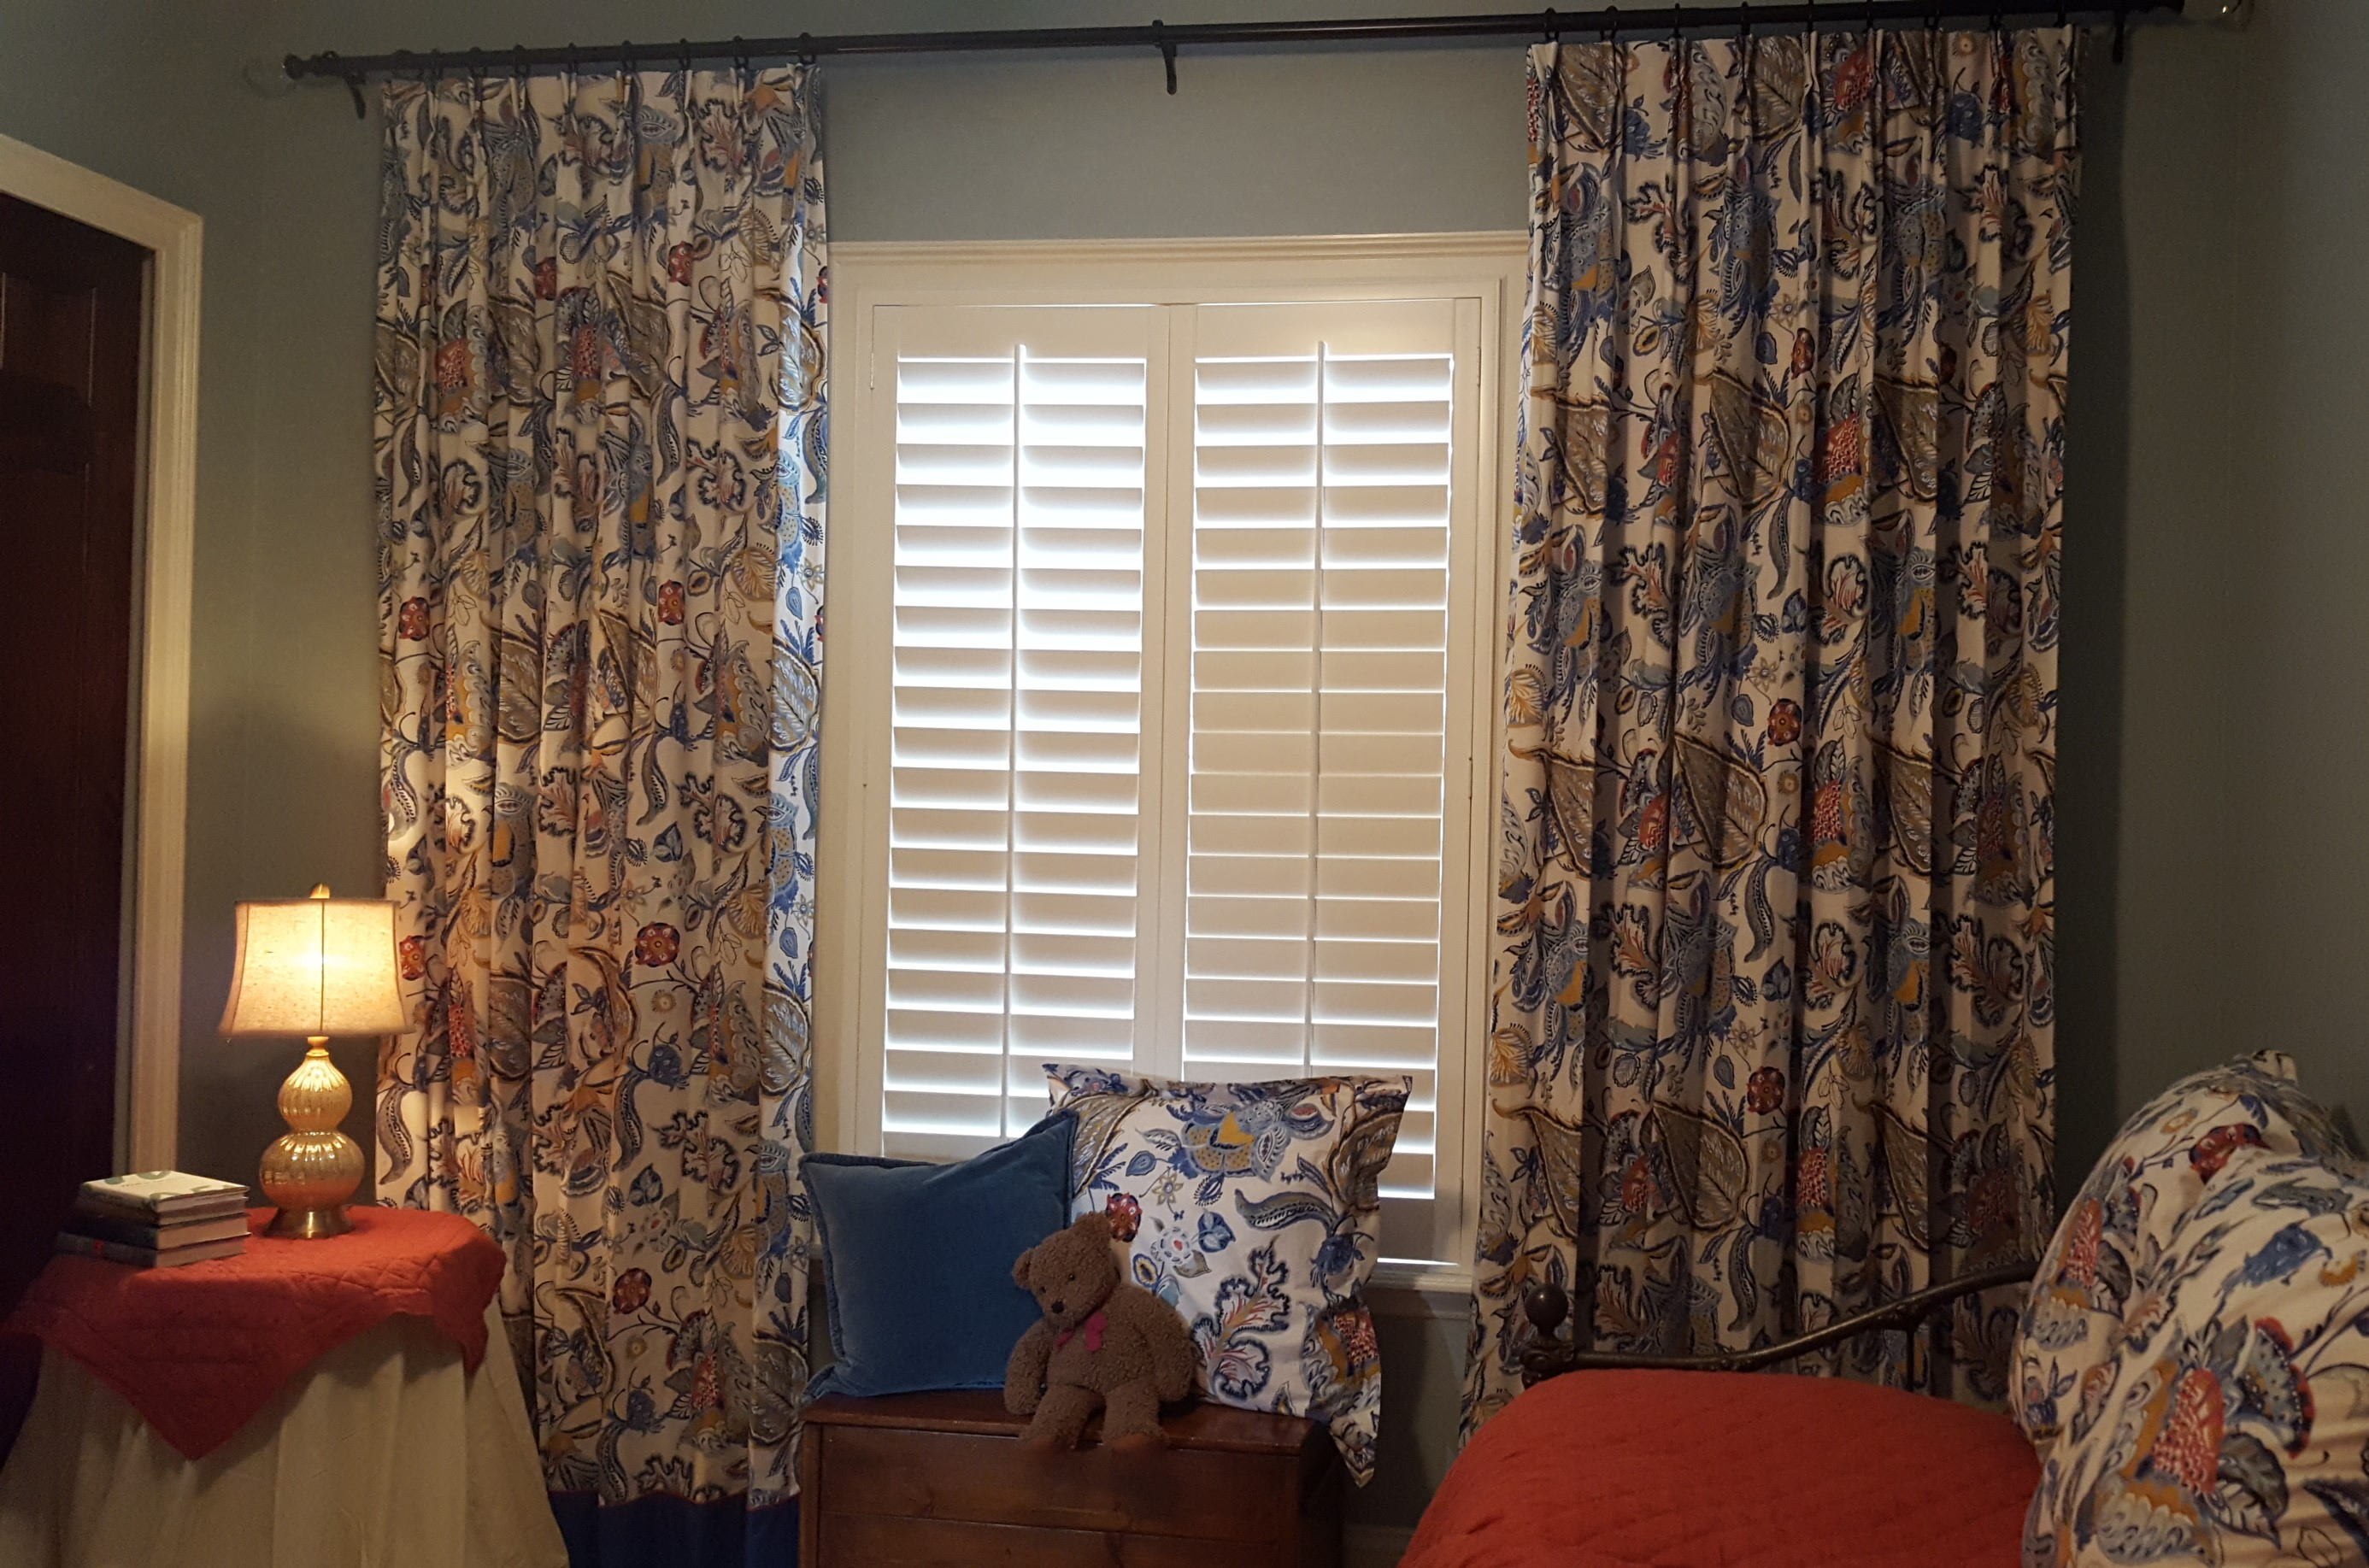 Buy Draperies Jameson The Dilemma Over Custom Or Ready Made Drapes The Denver